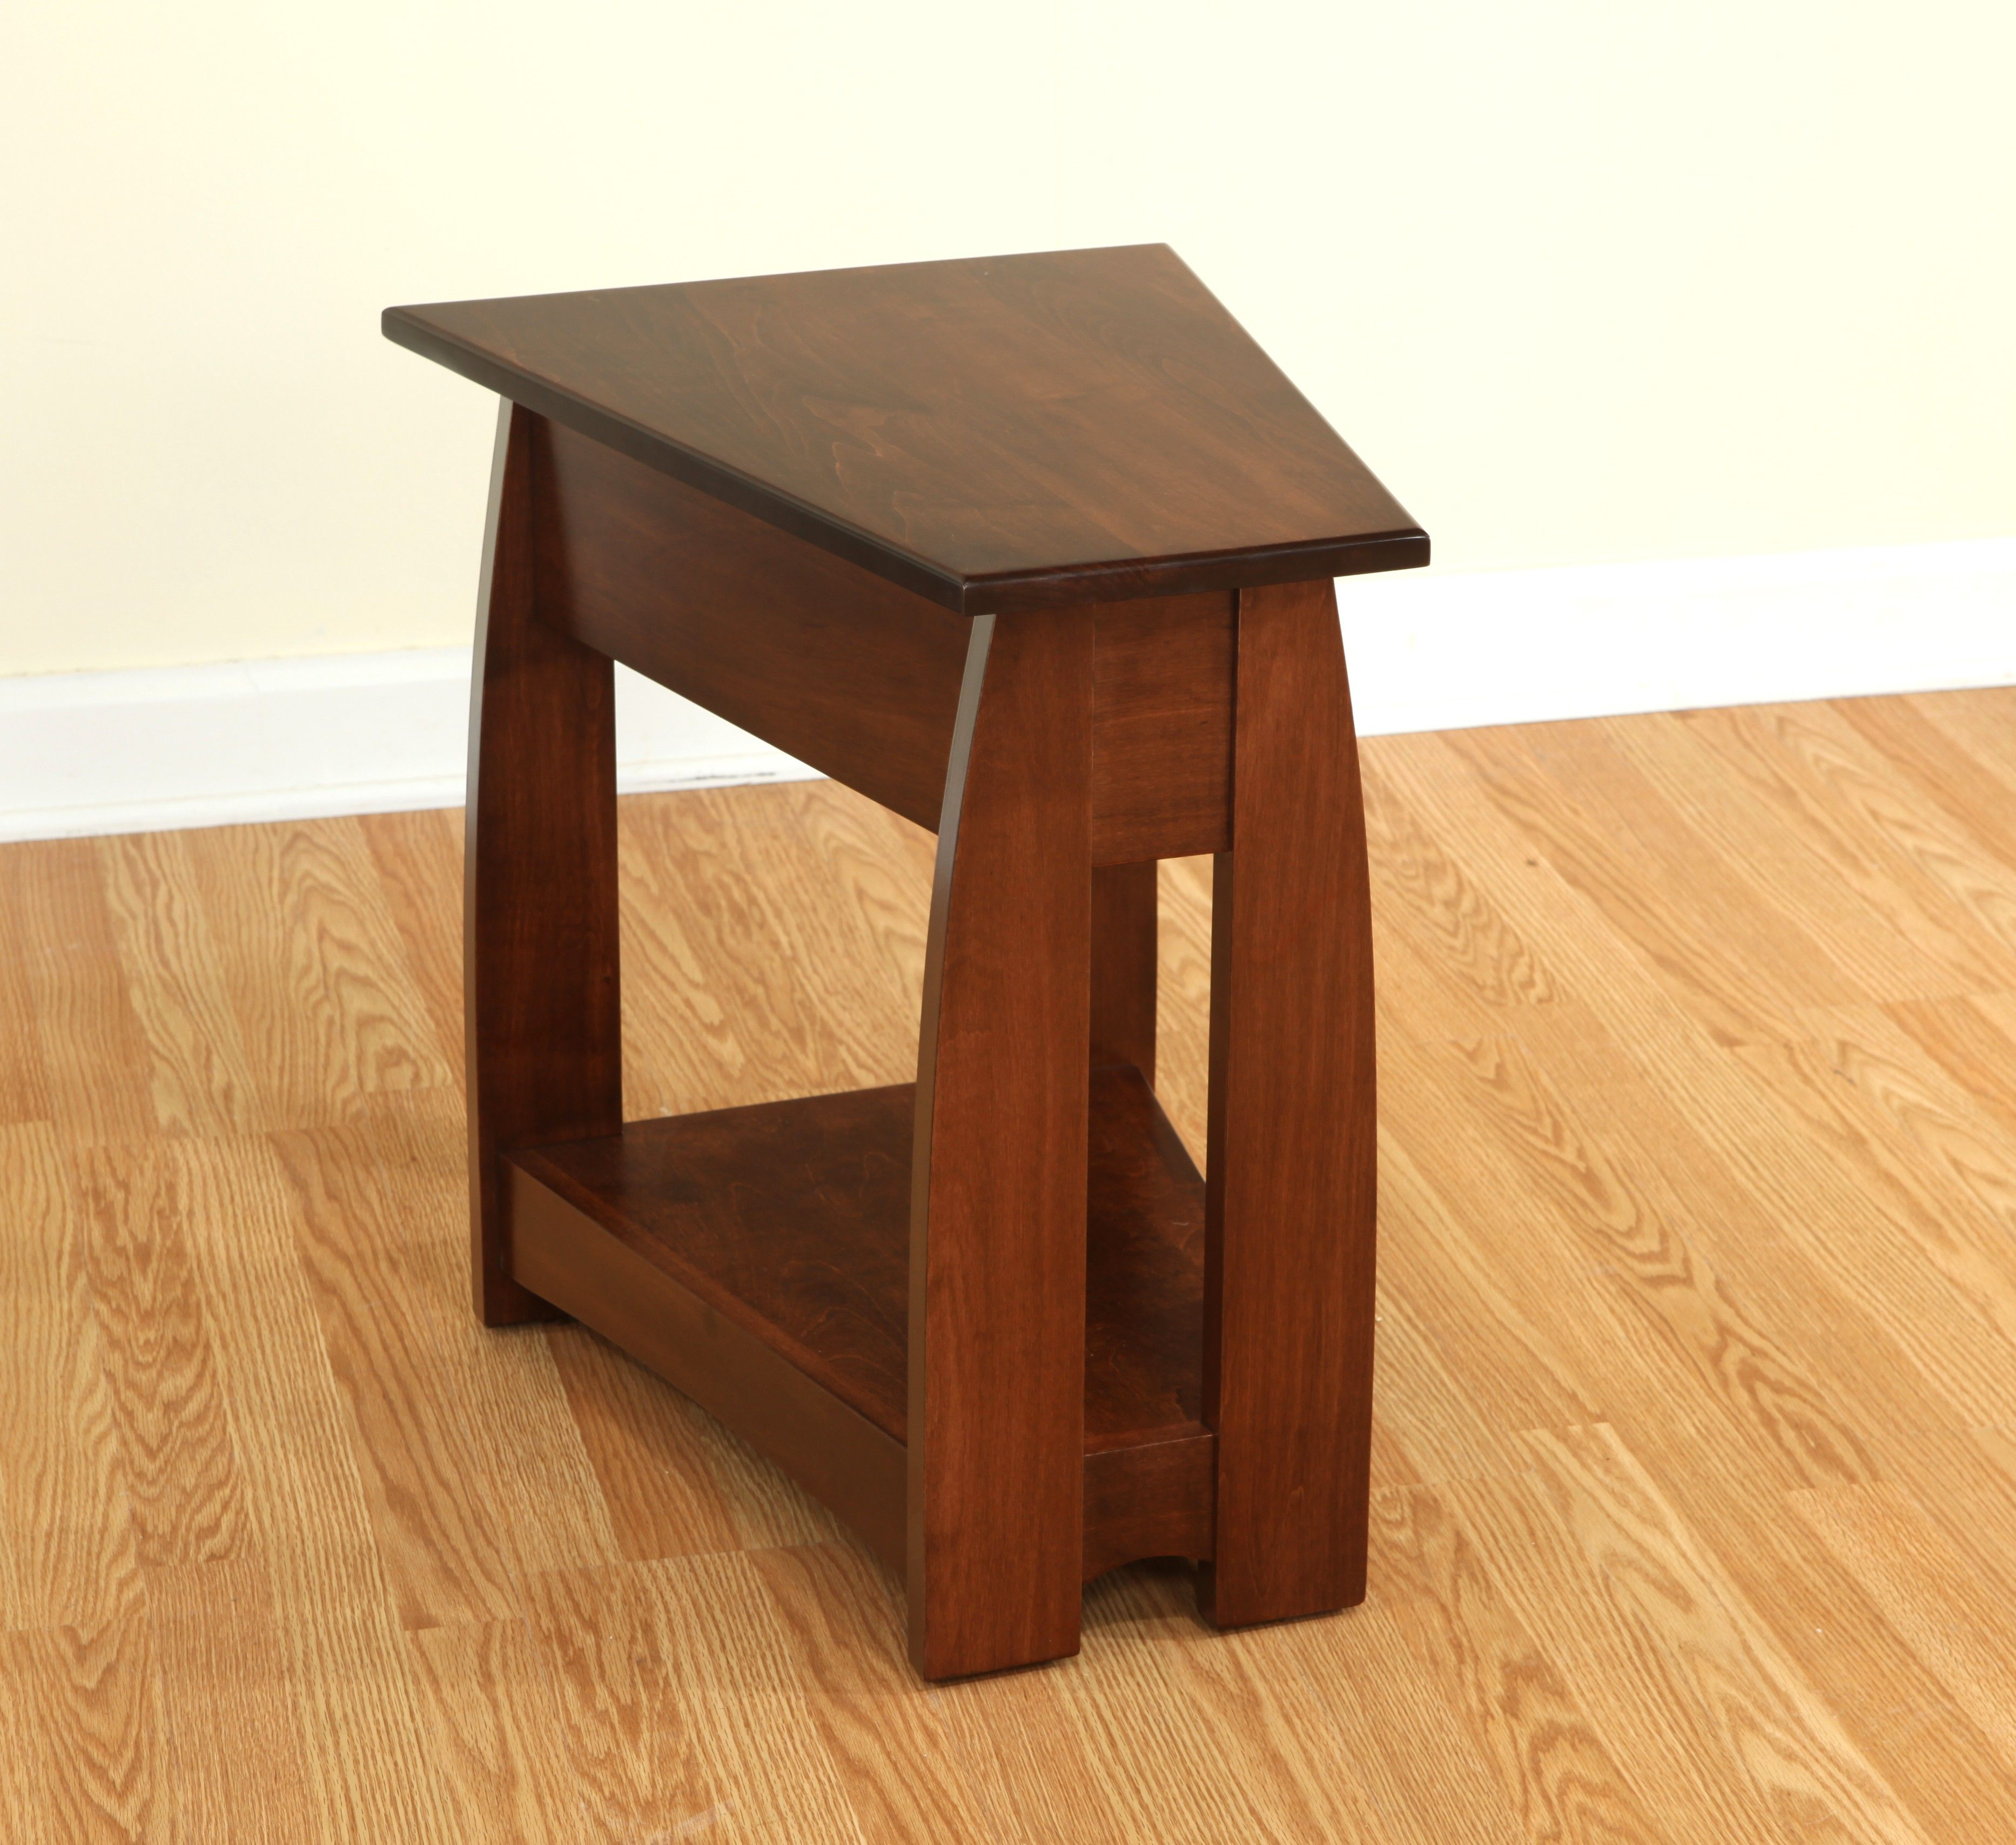 Quirky Tables Furniture Quirky Small Narrow End Table In Wedge Shape